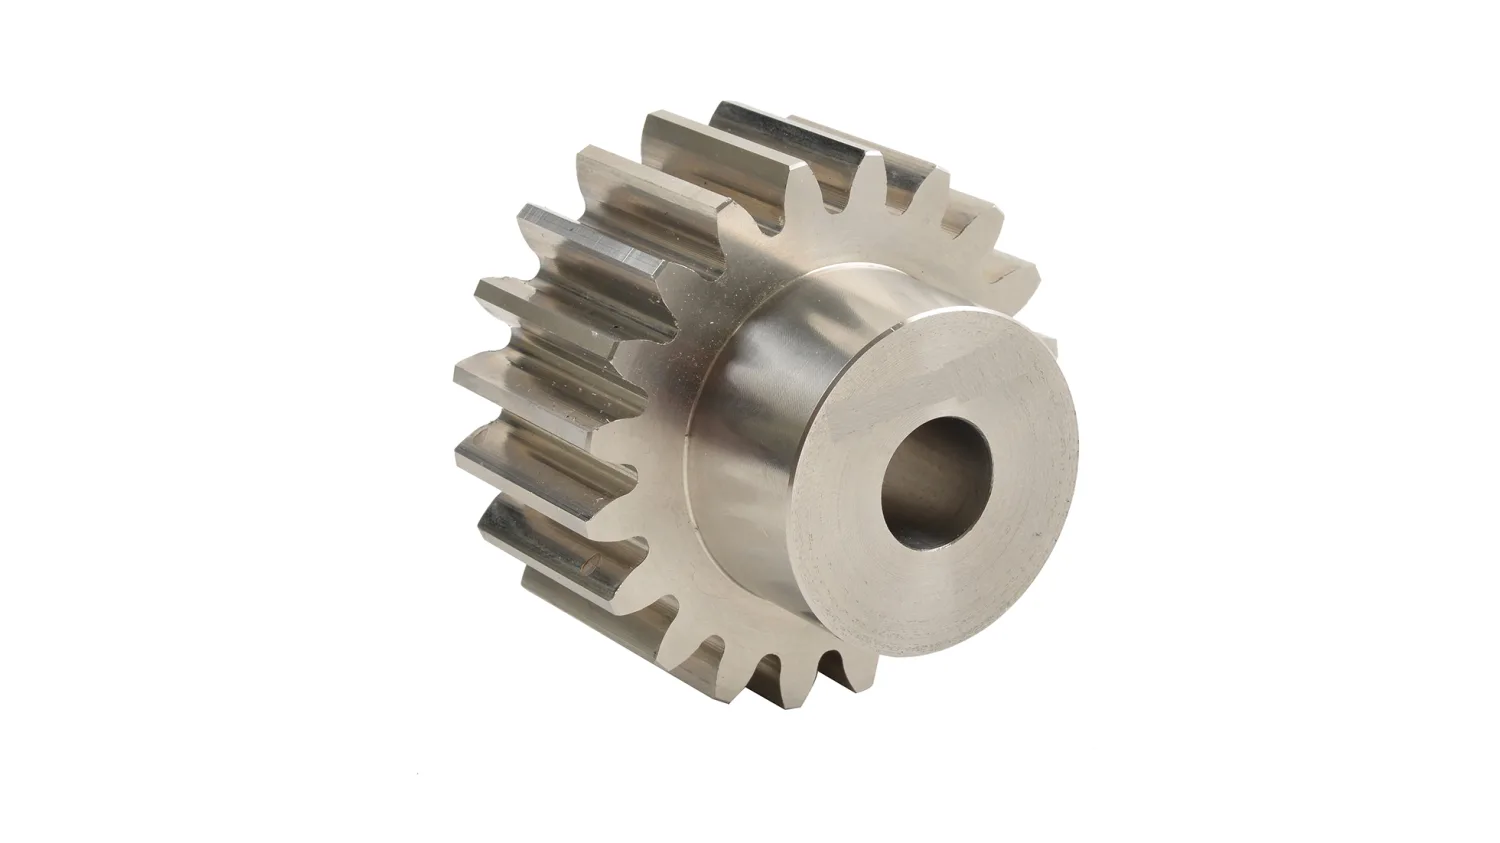 0-5-Mod-x-50-Tooth-Metric-Spur-Gear-in-Steel